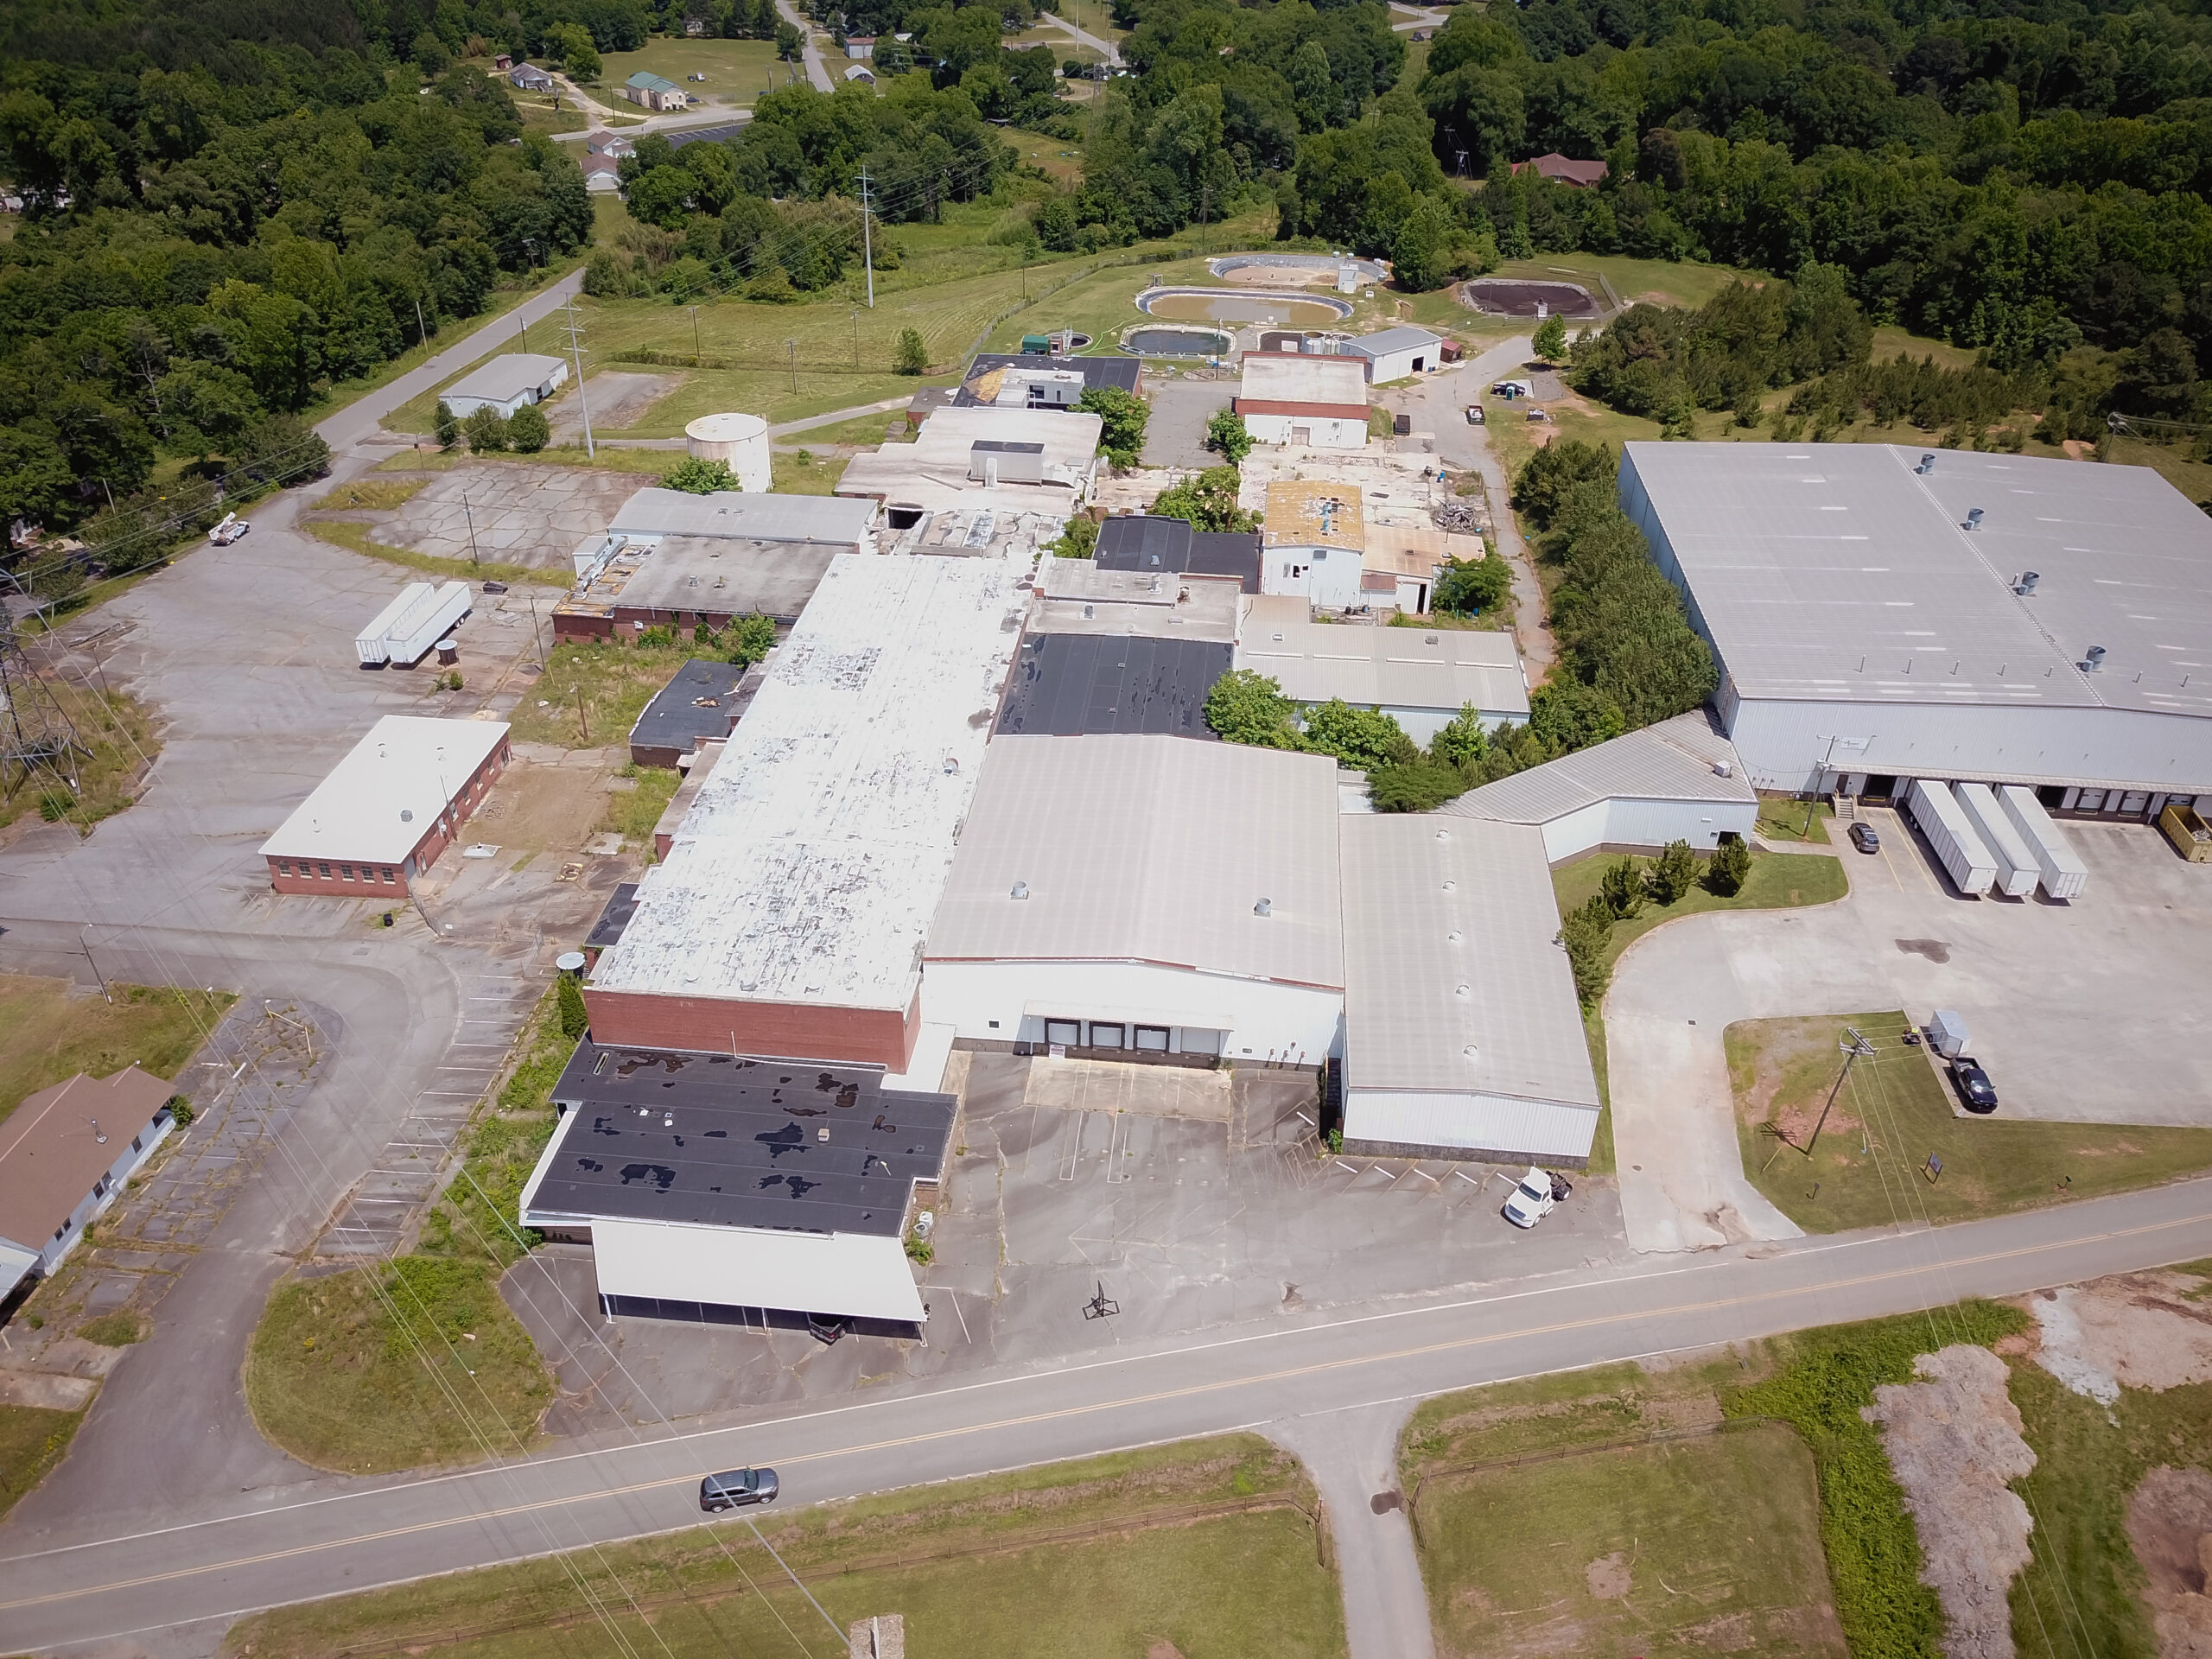 Video is up! Historic Mill, Materials, and Industrial Land Now Available